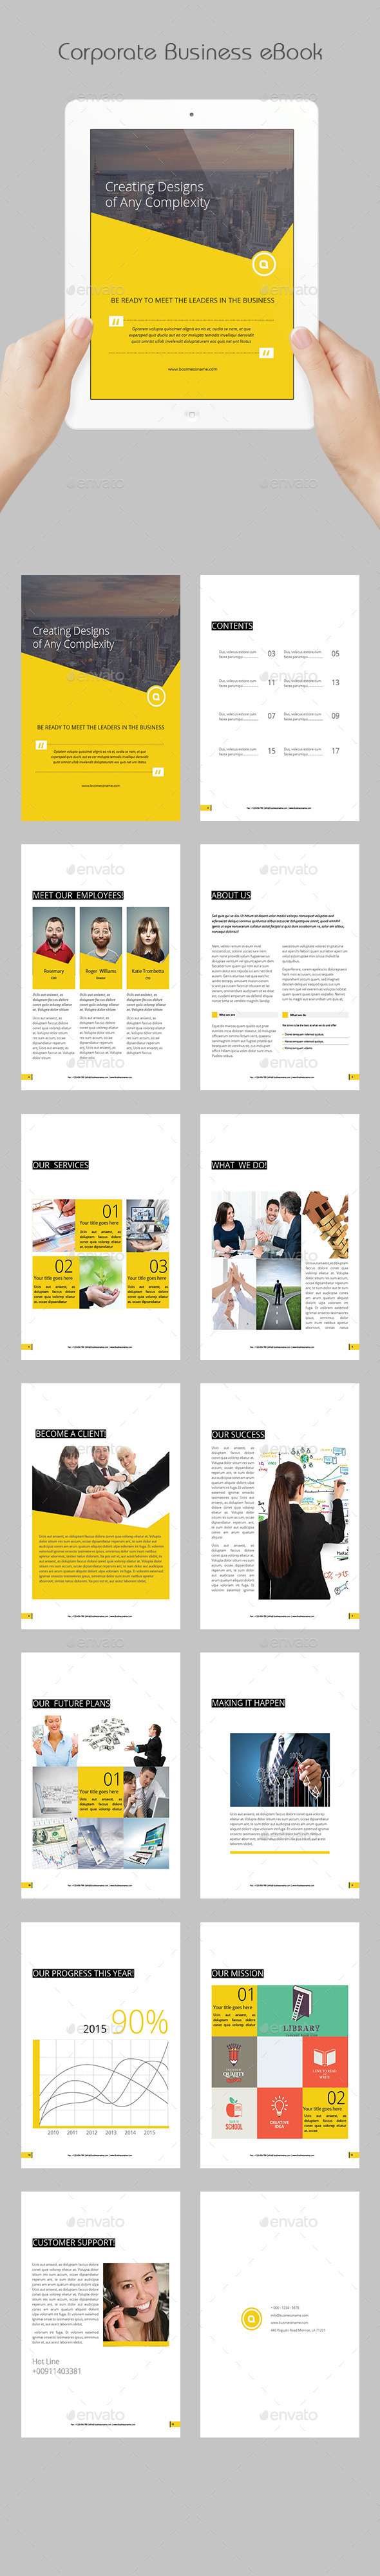 GraphicRiver Corporate Business eBook 11972523